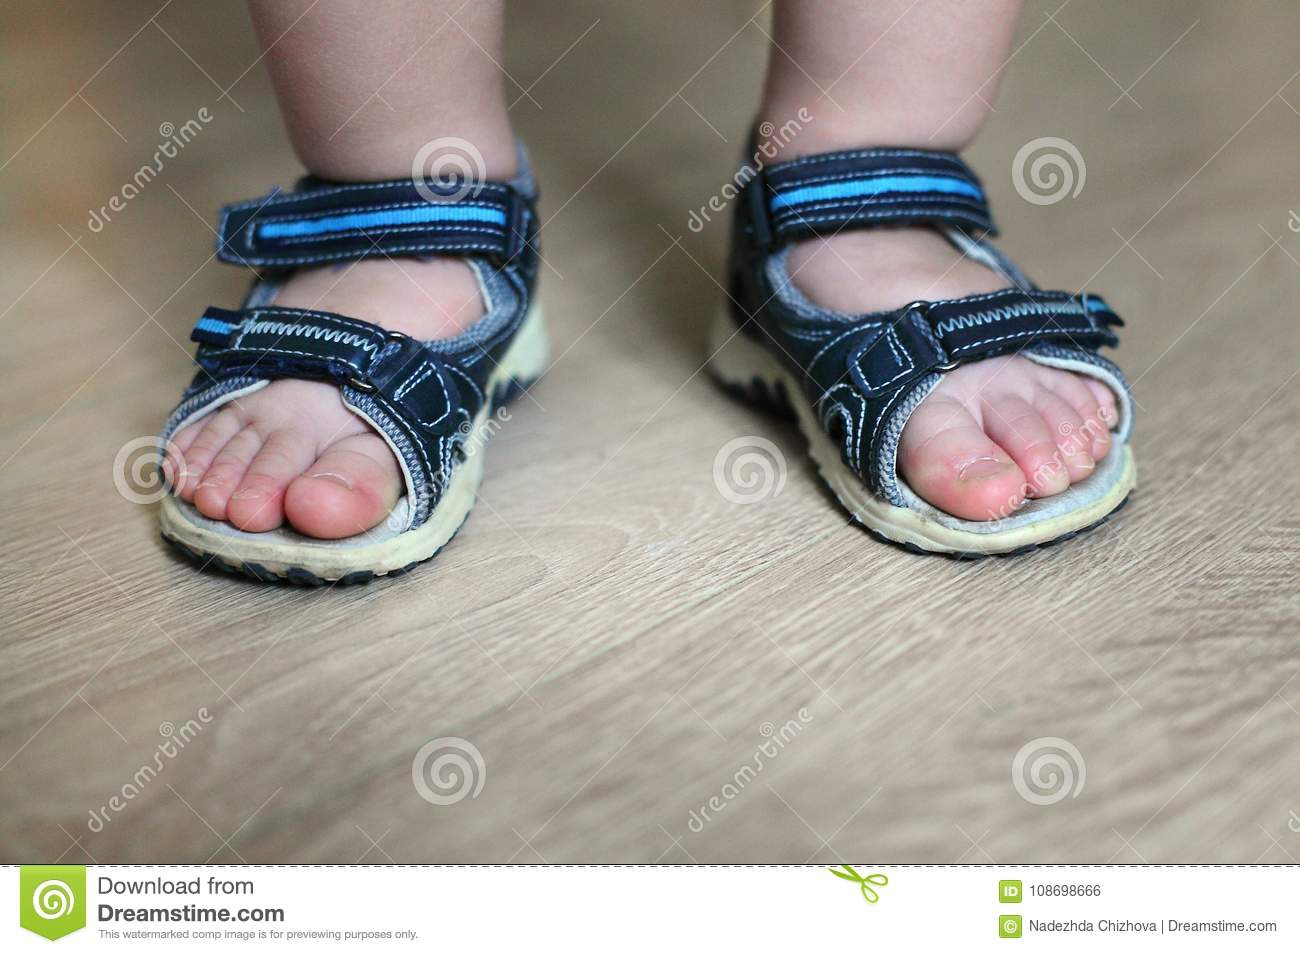 962b55b247e Children`s sandals on their feet. Toddler shoes. Tourist sandals for the  smallest travelers. A new purchase in a shoe store.